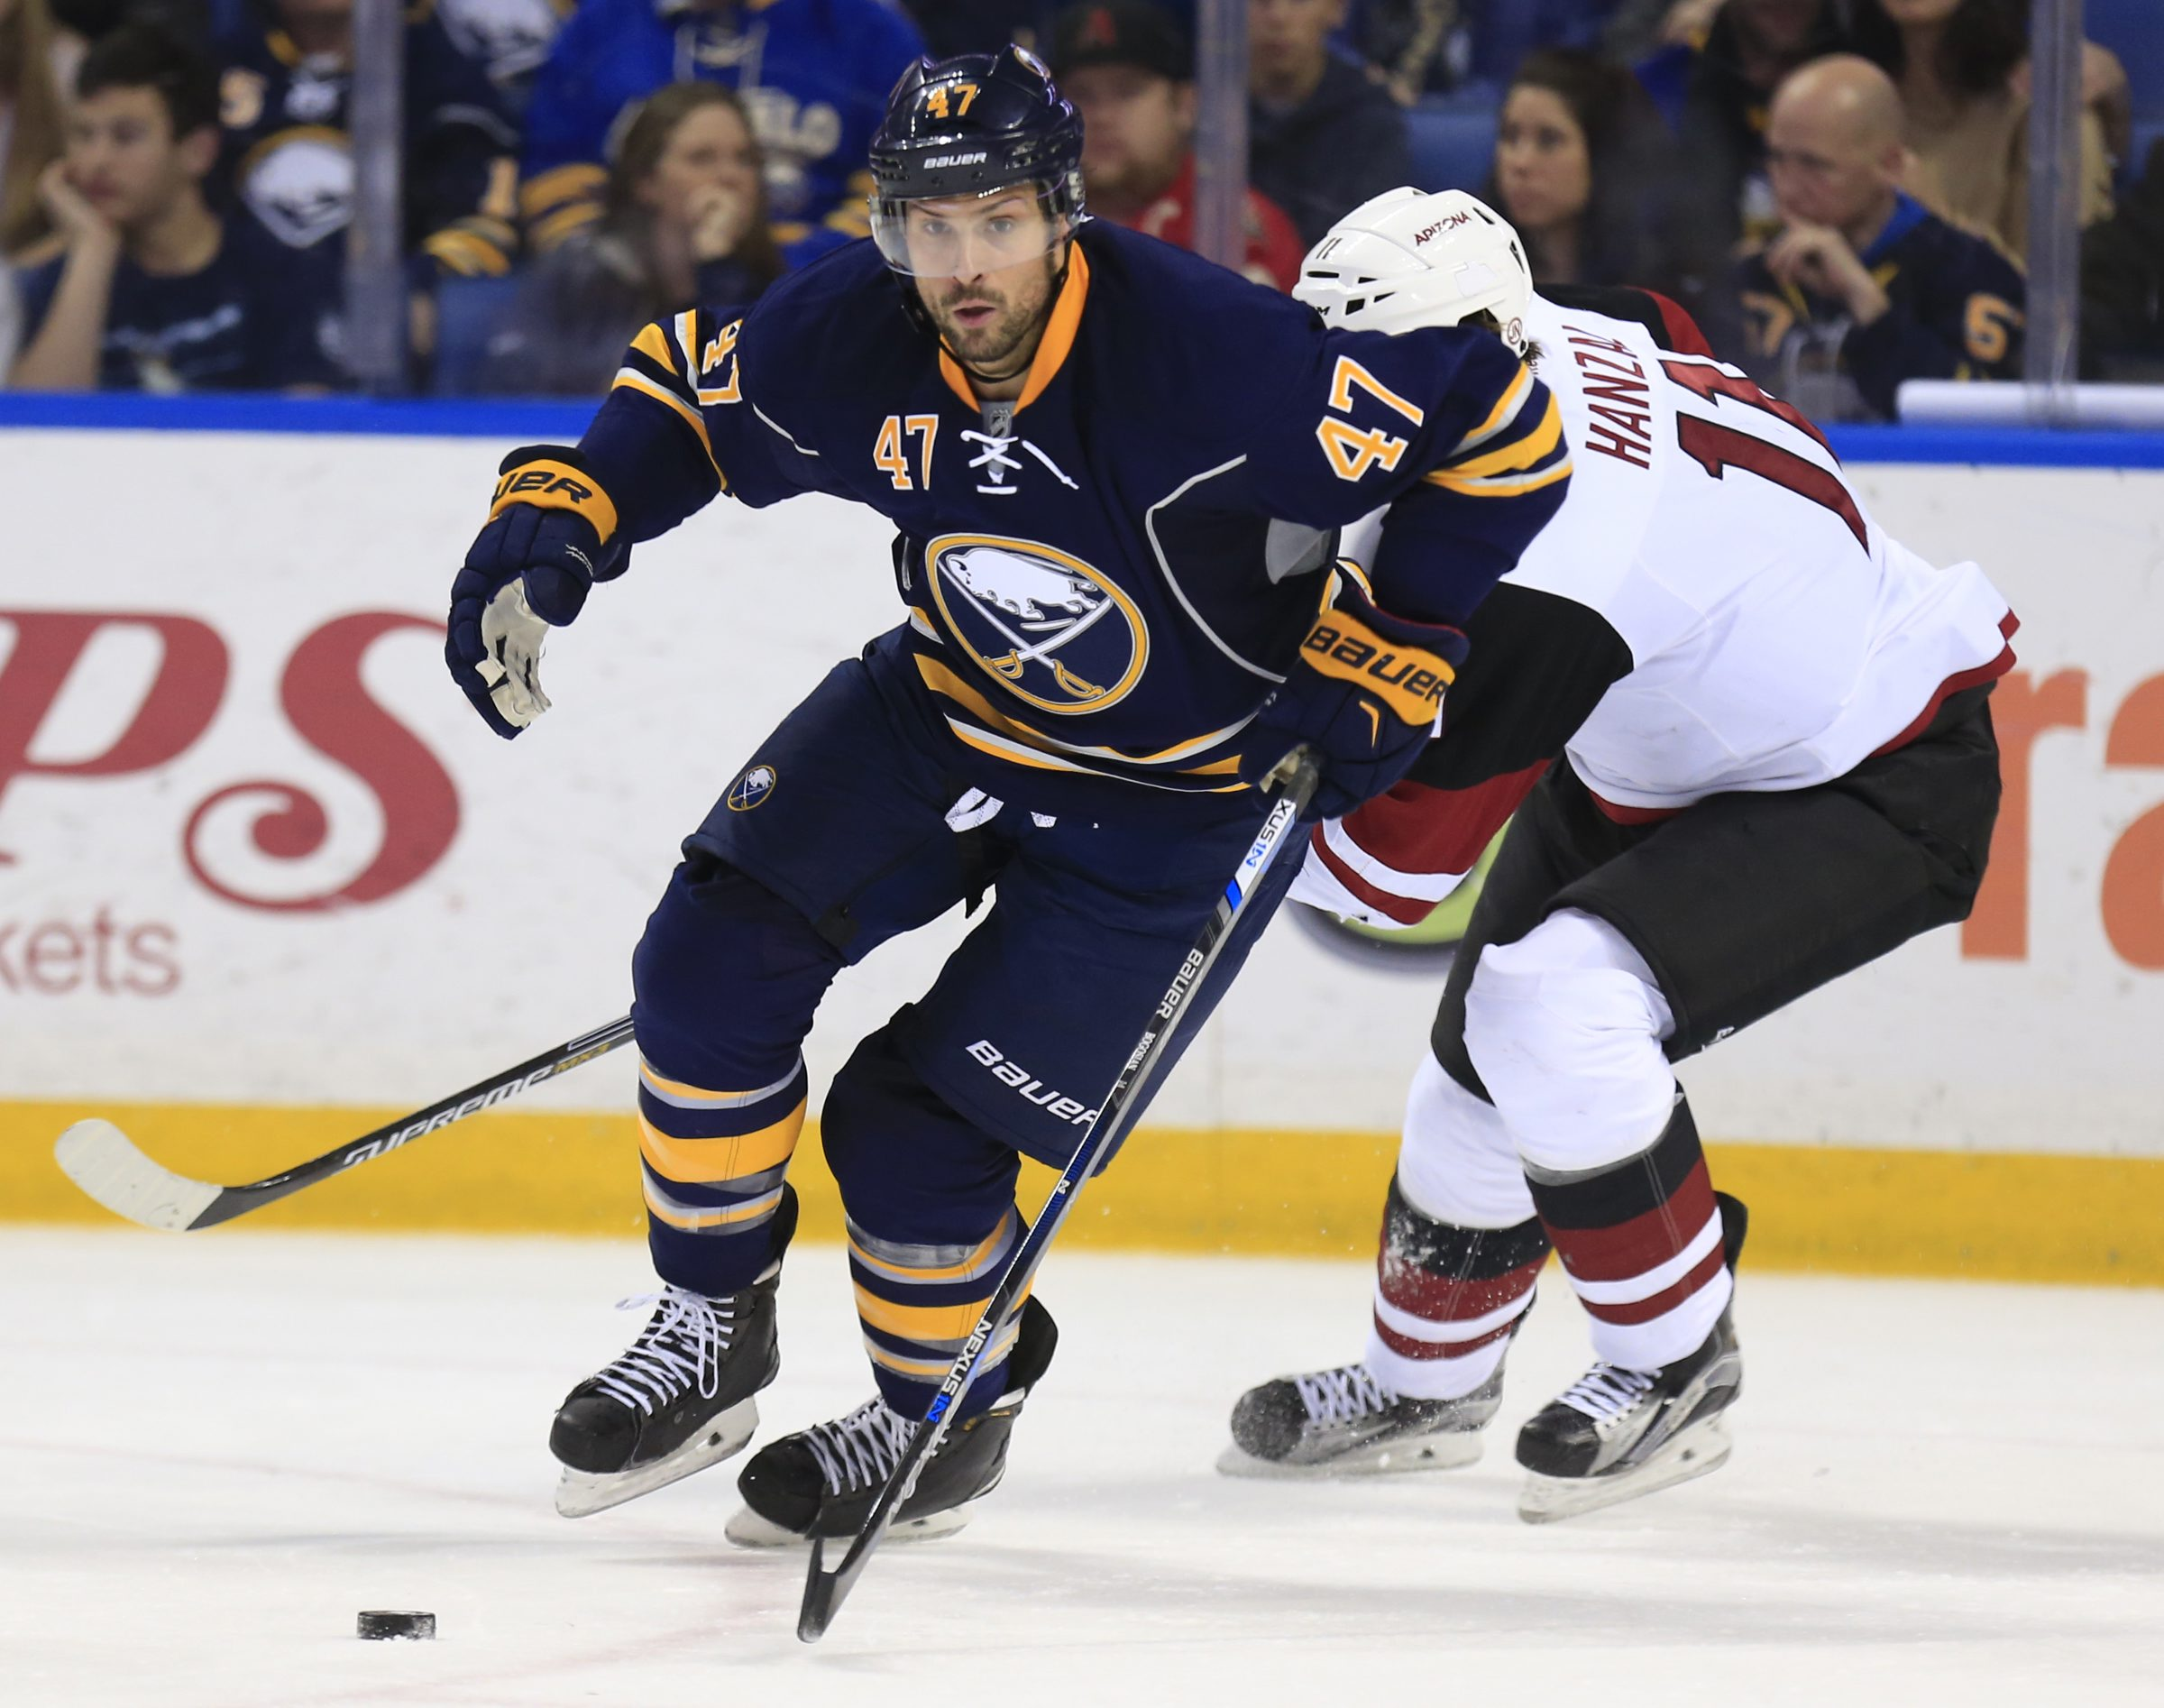 Zach Bogosian brings poise and a positive attitude to the Sabres. (Harry Scull Jr./Buffalo News file photo)